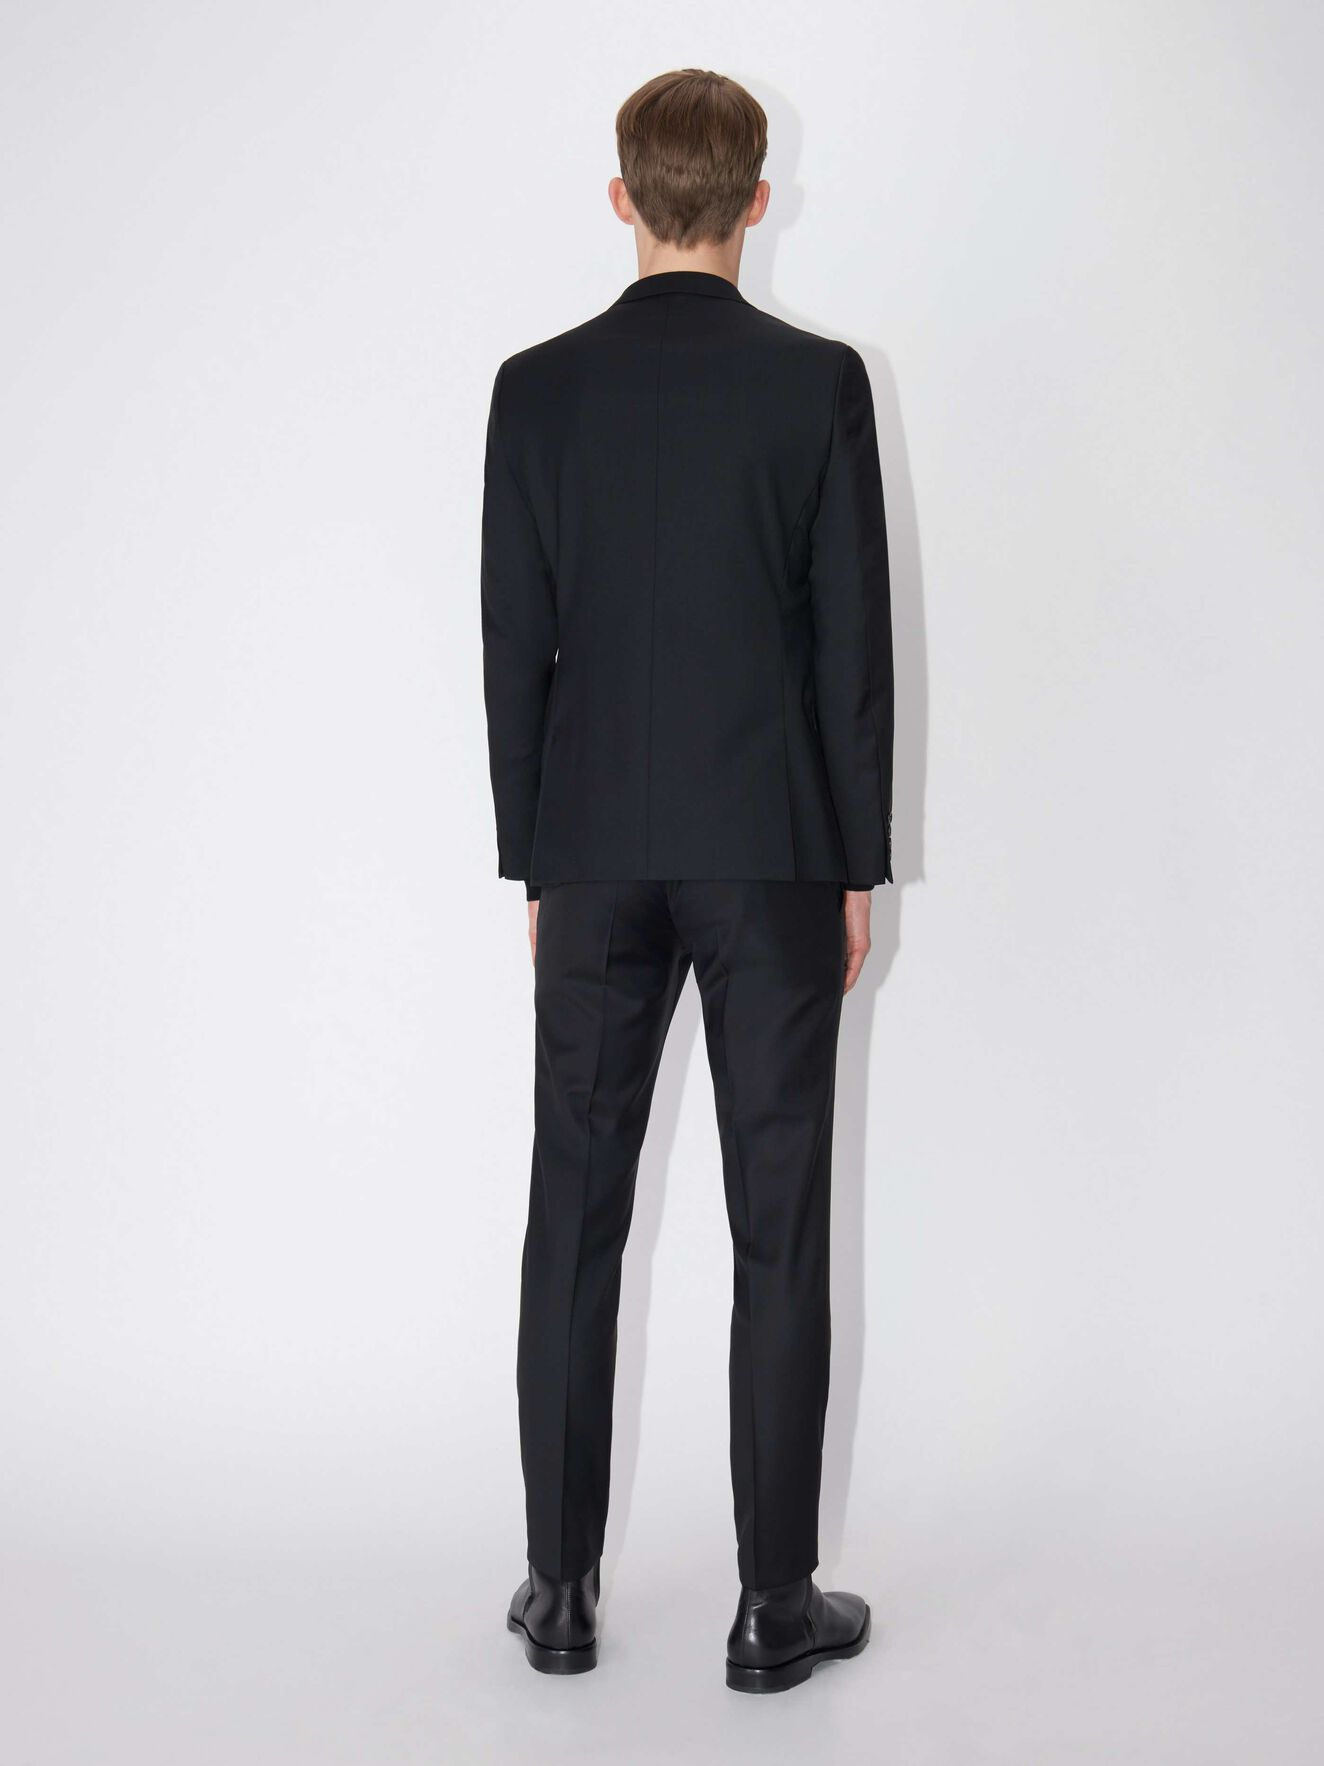 Jarrie Blazer in Black from Tiger of Sweden